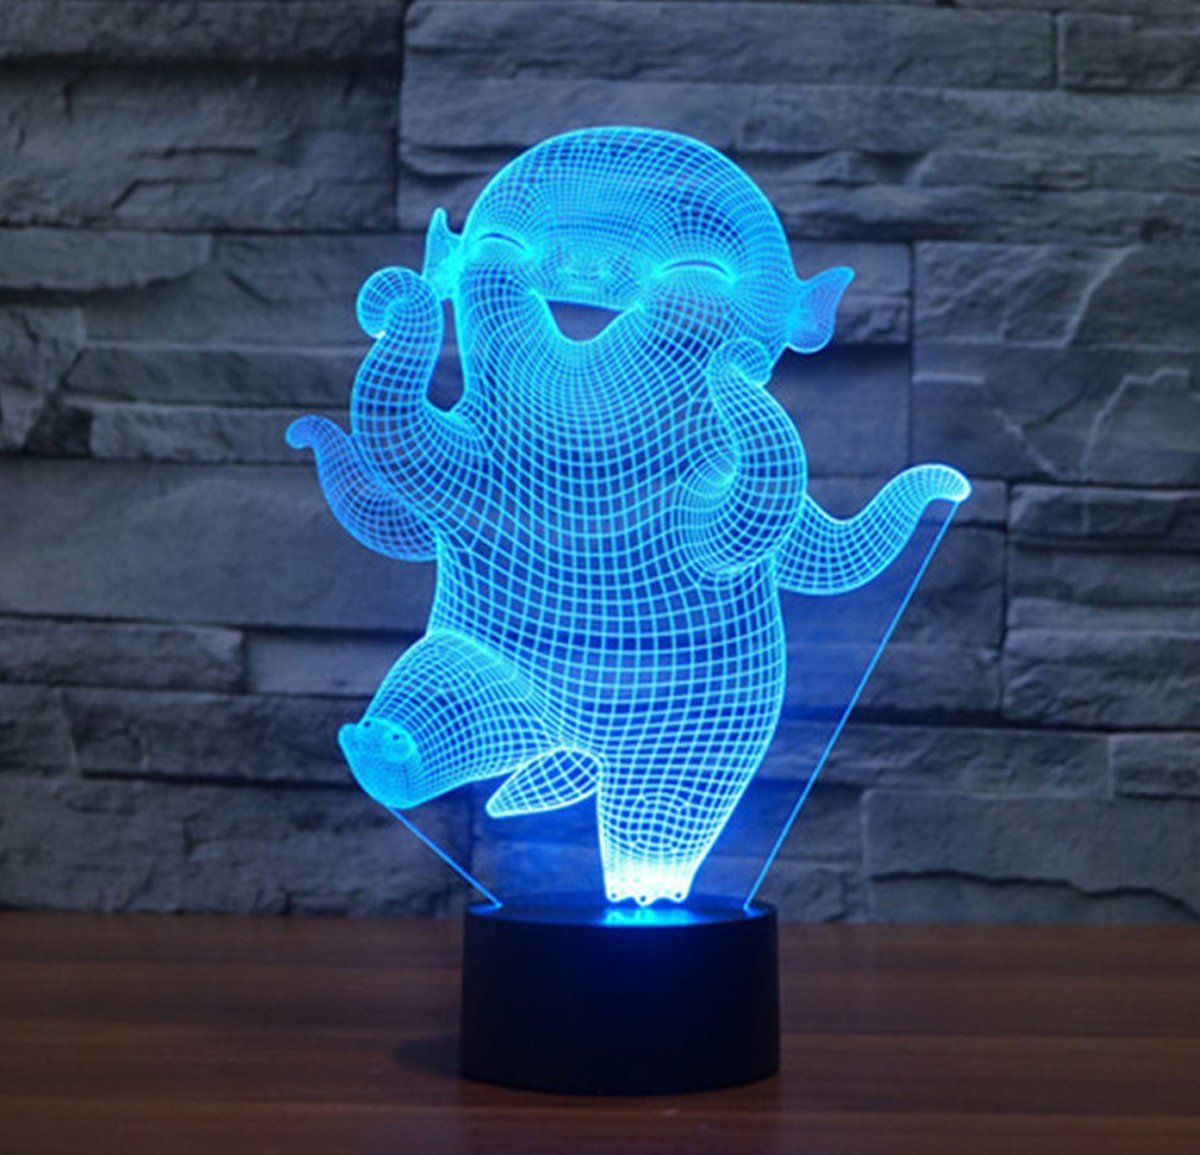 Hoba 3d Led Touch Illusion Lamp Stunning Visual Three Dimensional Effect 7 Colors Changing Creative Design Led Desk Lamp Night Light C Nochnye Ogni Nochnik Lampa